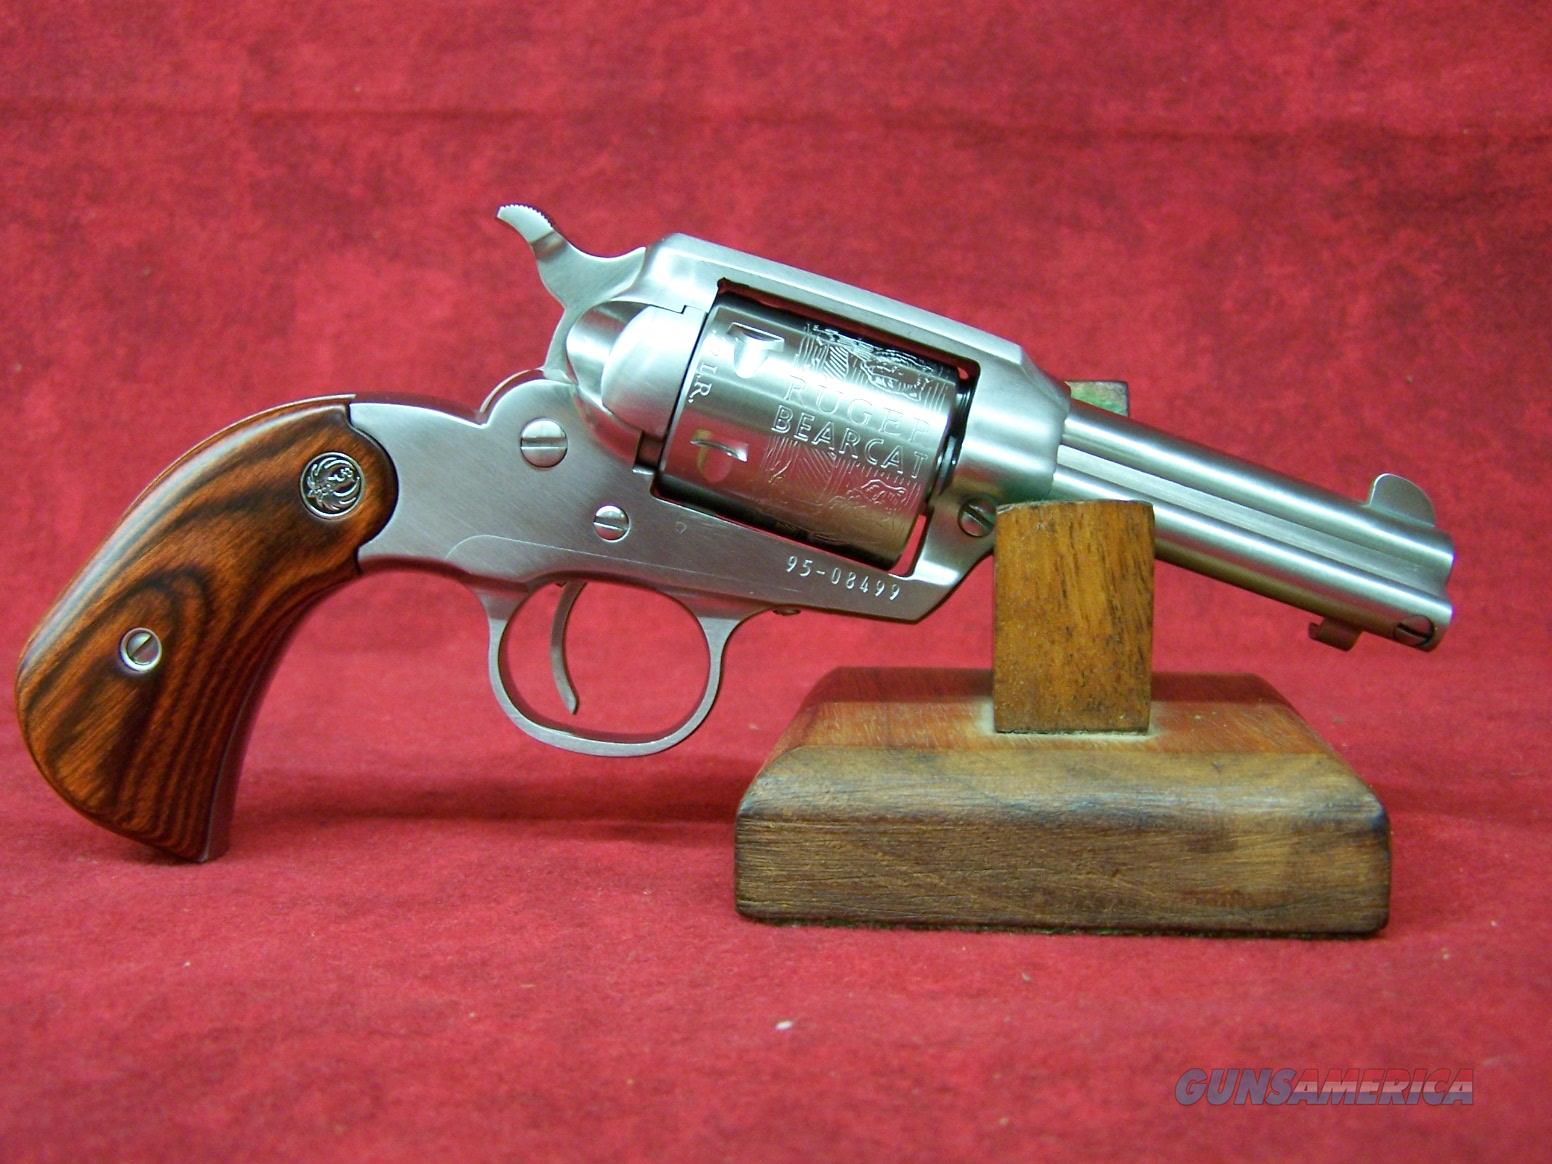 "RUGER BEARCAT SHOPKEEPER 22LR 3"" SS (00915)  Guns > Pistols > Ruger Single Action Revolvers > Bearcat"